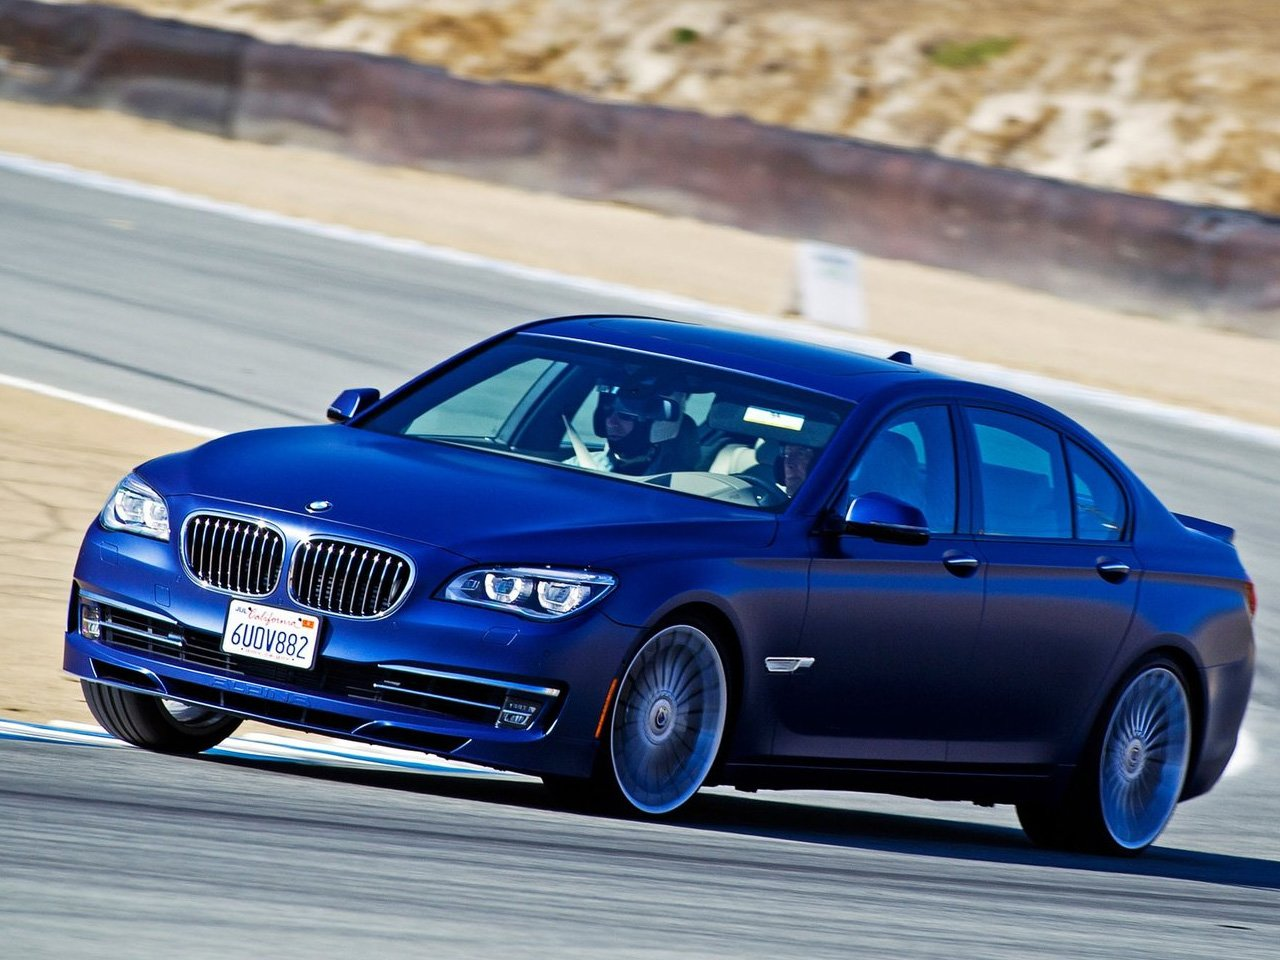 Latest 2013 Alpina Bmw B7 Auto Cars Concept Free Download